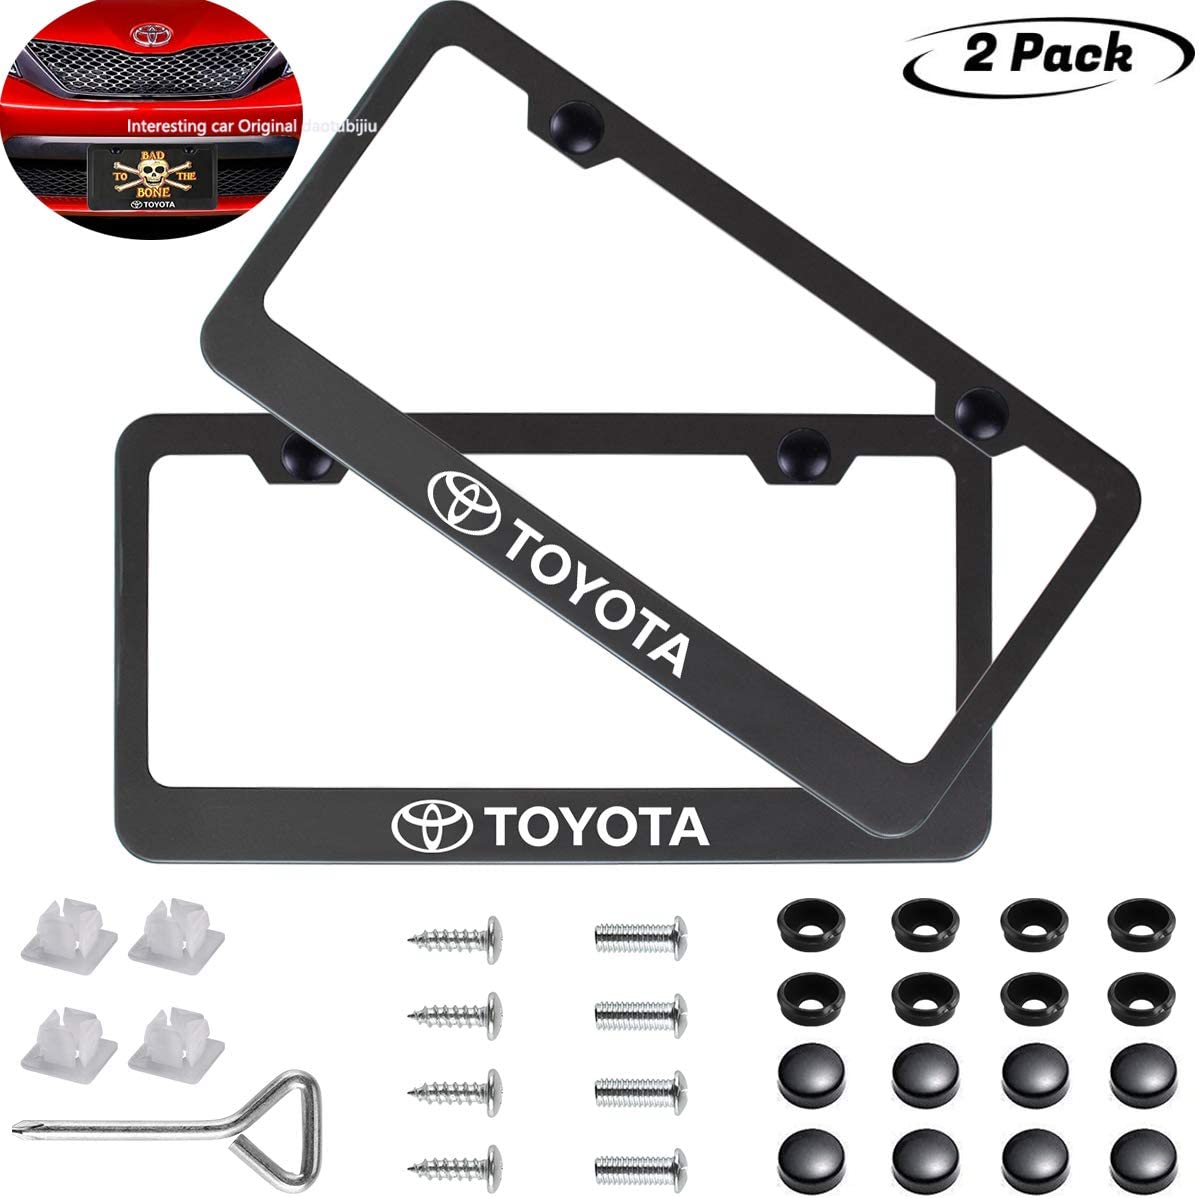 2pcs for TOYOTA front and Rear License Plate Frame,Newest Matte Aluminum Alloy License Plate for TOYOTA All Models,Personalize and Decorate for TOYOTA License Plate Cover,Screw Caps Included /…